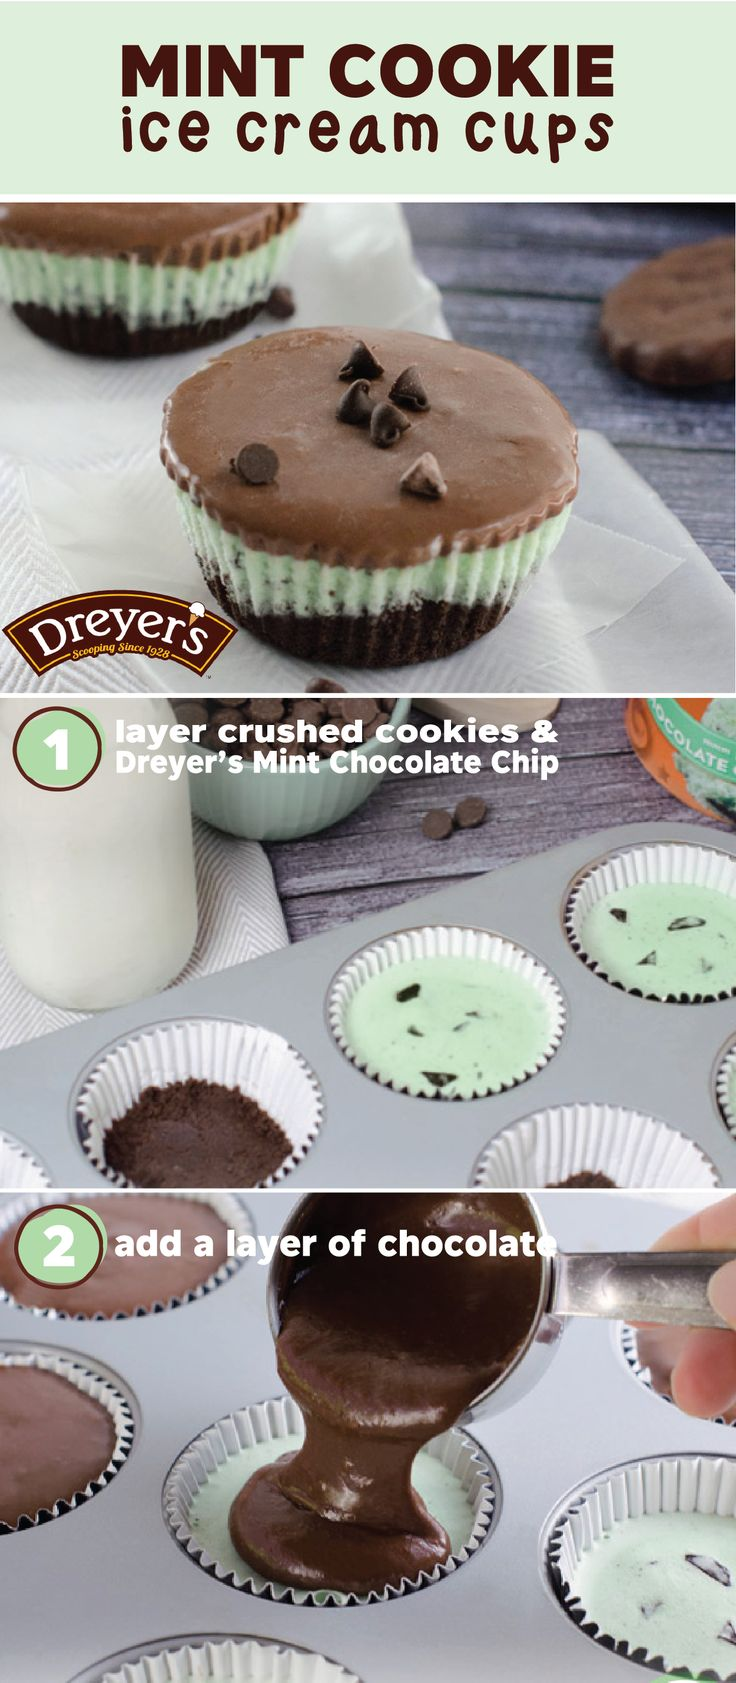 Dreyer's Slow Churned mint chocolate chip light ice cream in a bite-sized form—it's almost too good to be true. See how you can make this dessert recipe for Mint Cookie Ice Cream Cups with your kiddos to enjoy a sweet treat after a day of outdoor fun!